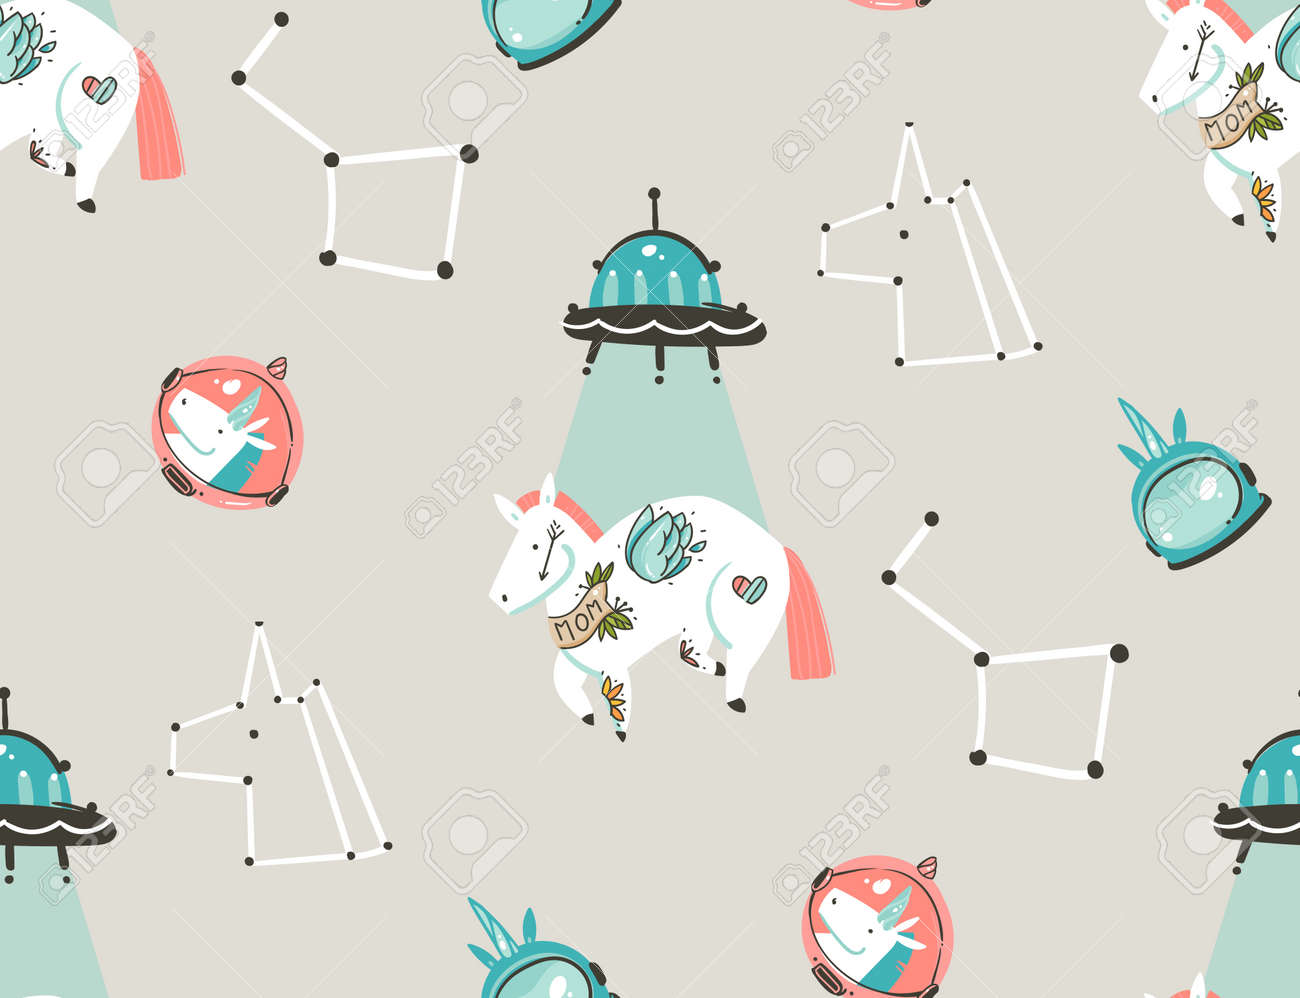 Hand drawn vector abstract graphic creative artistic cartoon illustrations seamless pattern with astronaut unicorns with old school tattoo,stars,planets and spaceship isolated on pastel background - 99286191